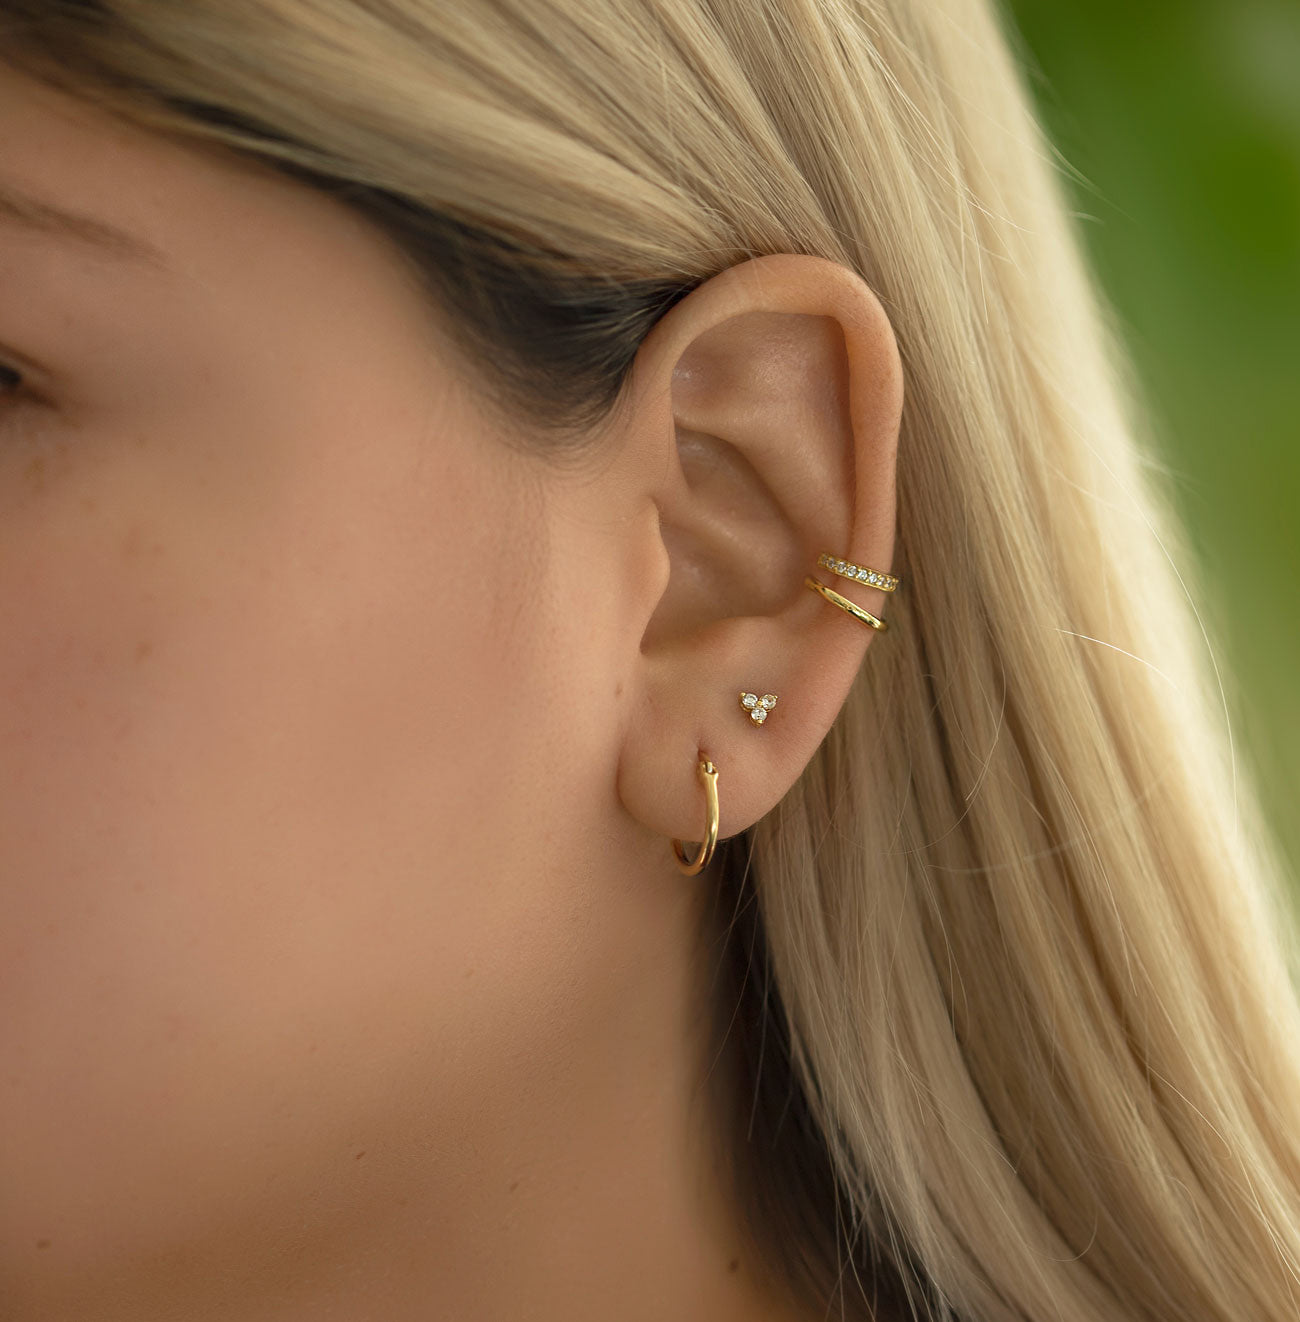 Curated Ear with Small Gold Hoop Earrings, Clover Stud Earring, Eternity and Pave Ear Cuff